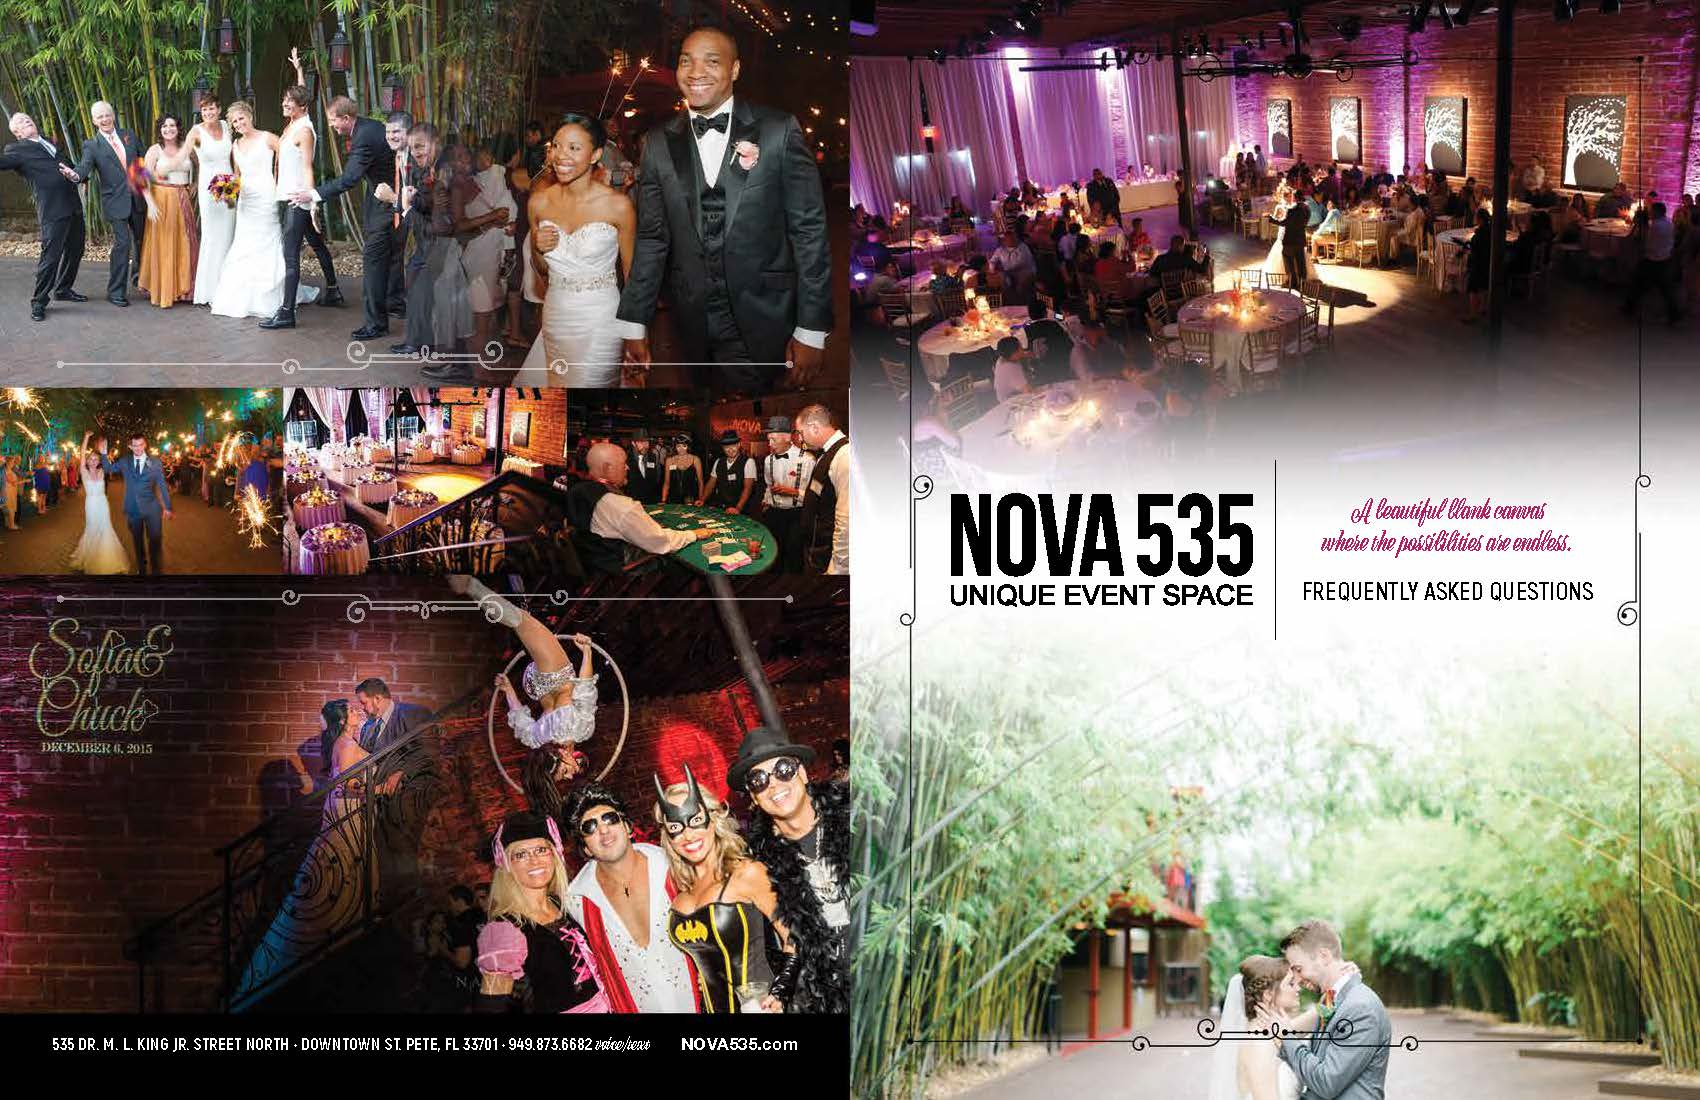 Historic DTSP venue NOVA 535 faq brochure cover images